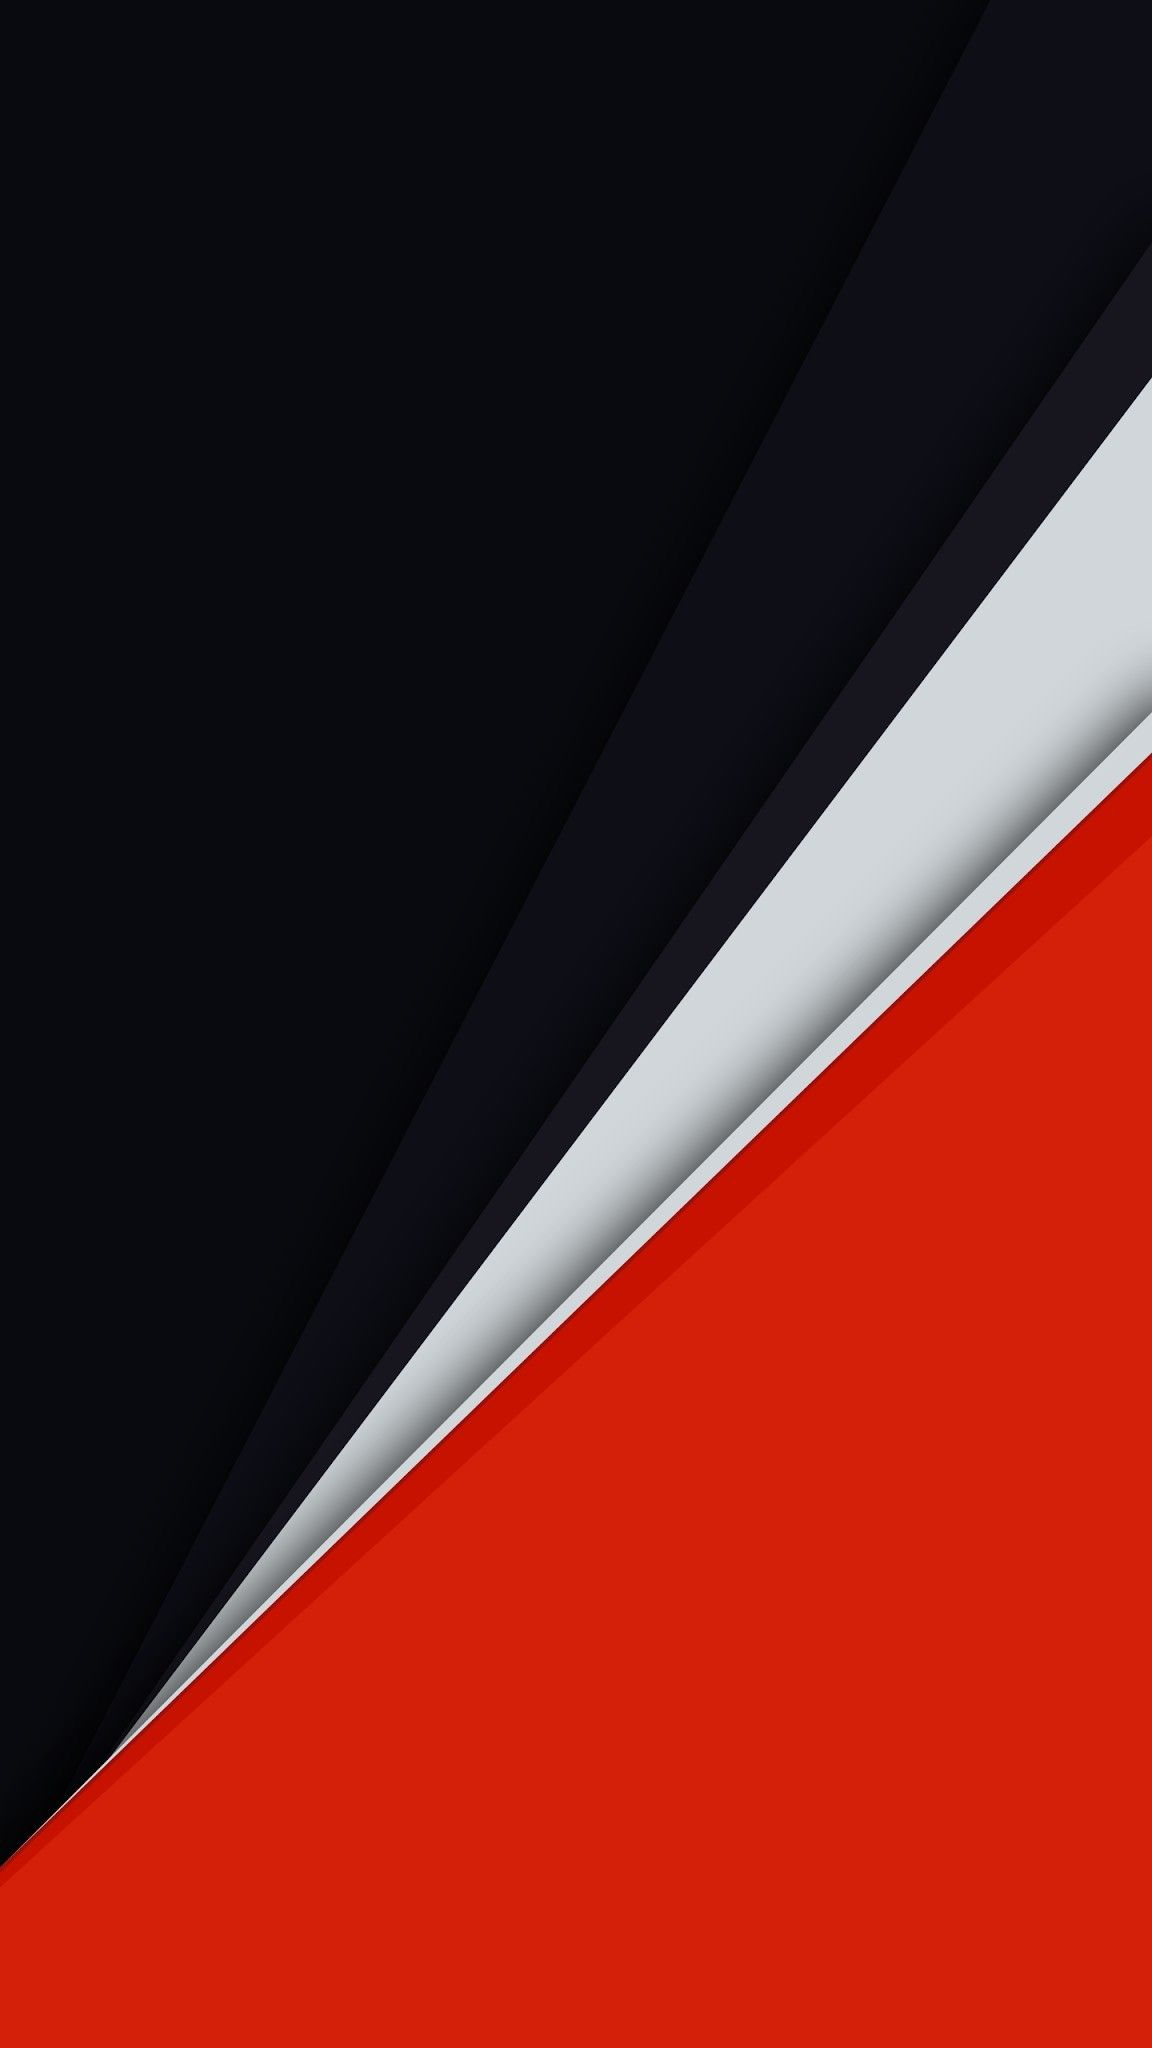 Red Design iPhone Wallpapers on WallpaperDog